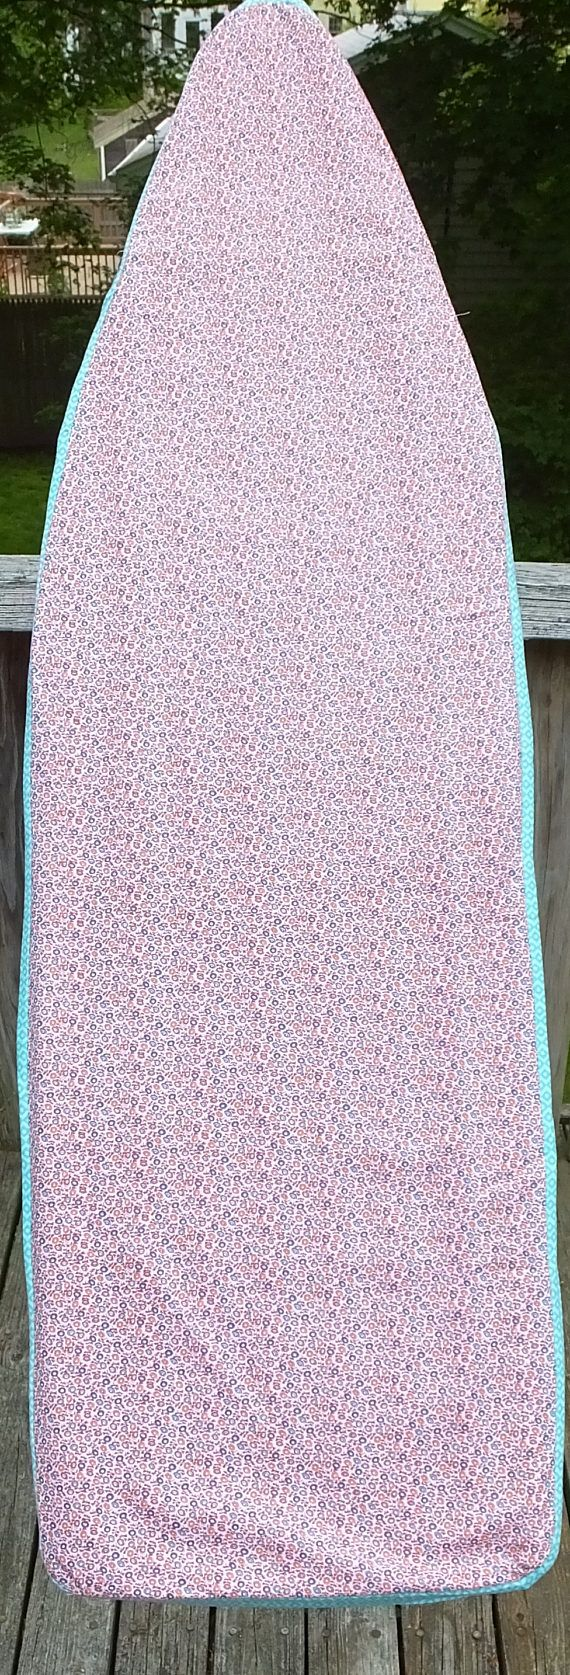 Beautiful vintage fabric ironing board cover was created from 100 % cotton vintage floral print fabric for the top and accented with contemporary turquoise fabric along the sides. This cover is very lightweight and lined with Pellon Insul-Fleece for thermal protection and should easily fit over any extra padding if you have it. This cover is designed to fit a standard 54 x 14.5 ironing board. The cover measurements from side to side are 58.75 x 20.5 and has a drawstring all around to pull…